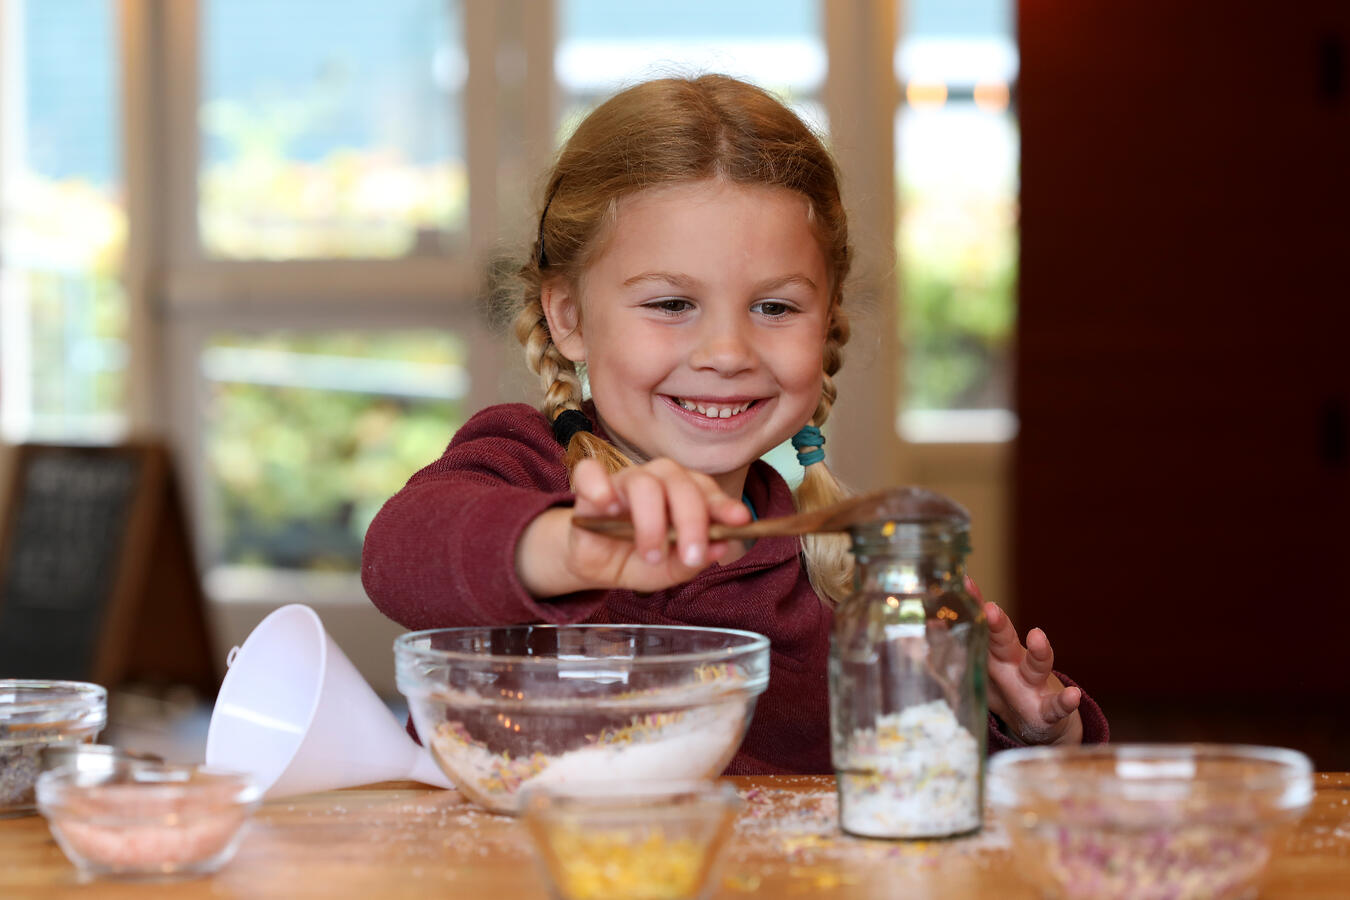 Child scooping salts in a jar